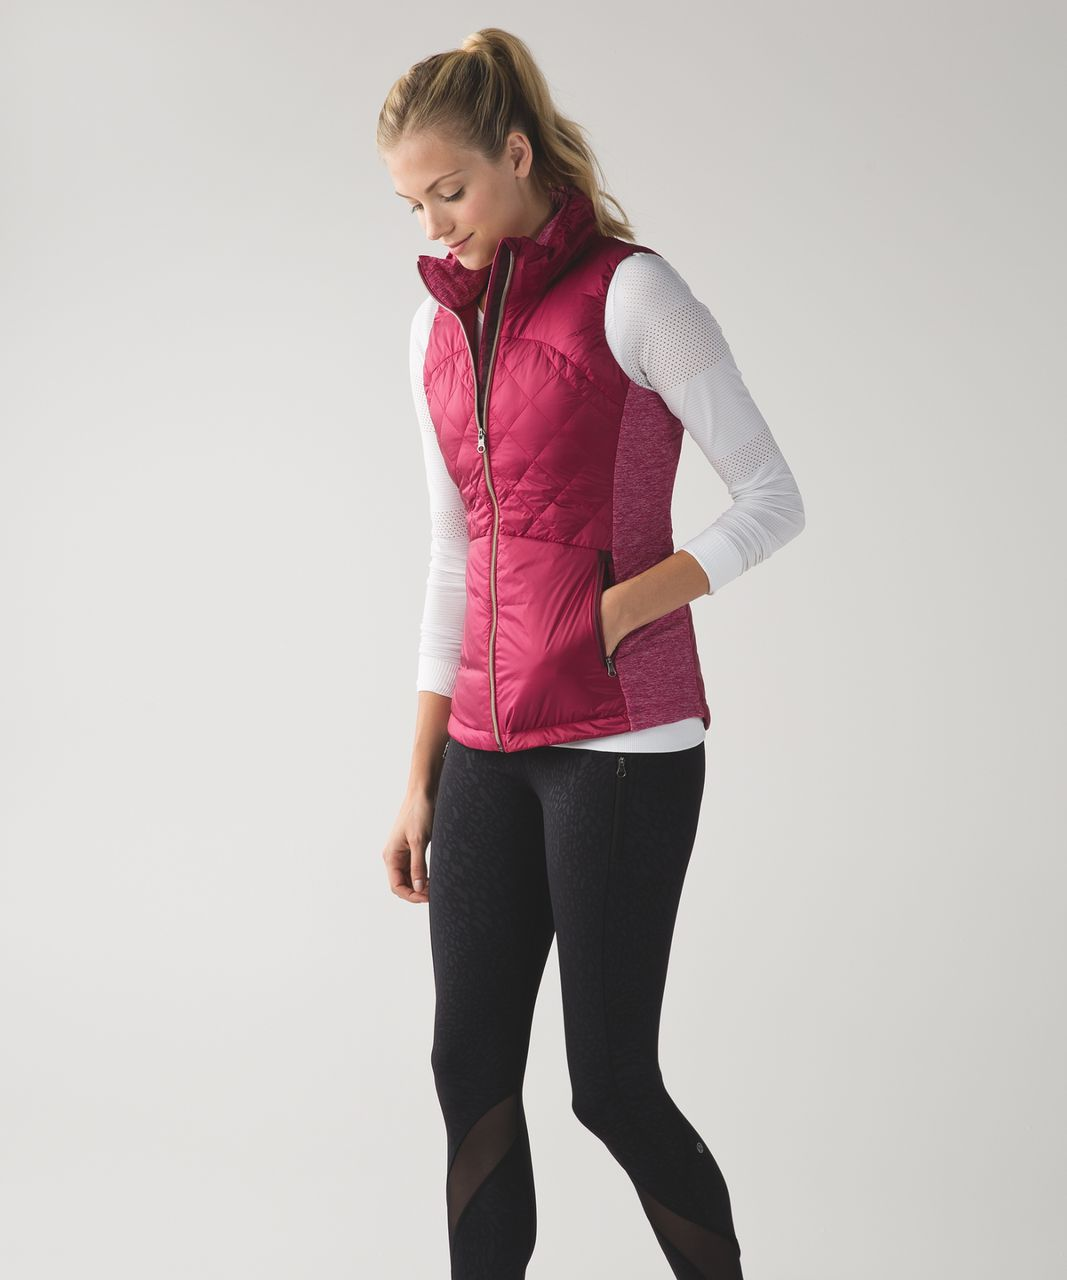 Lululemon Down For A Run Vest - Berry Rumble